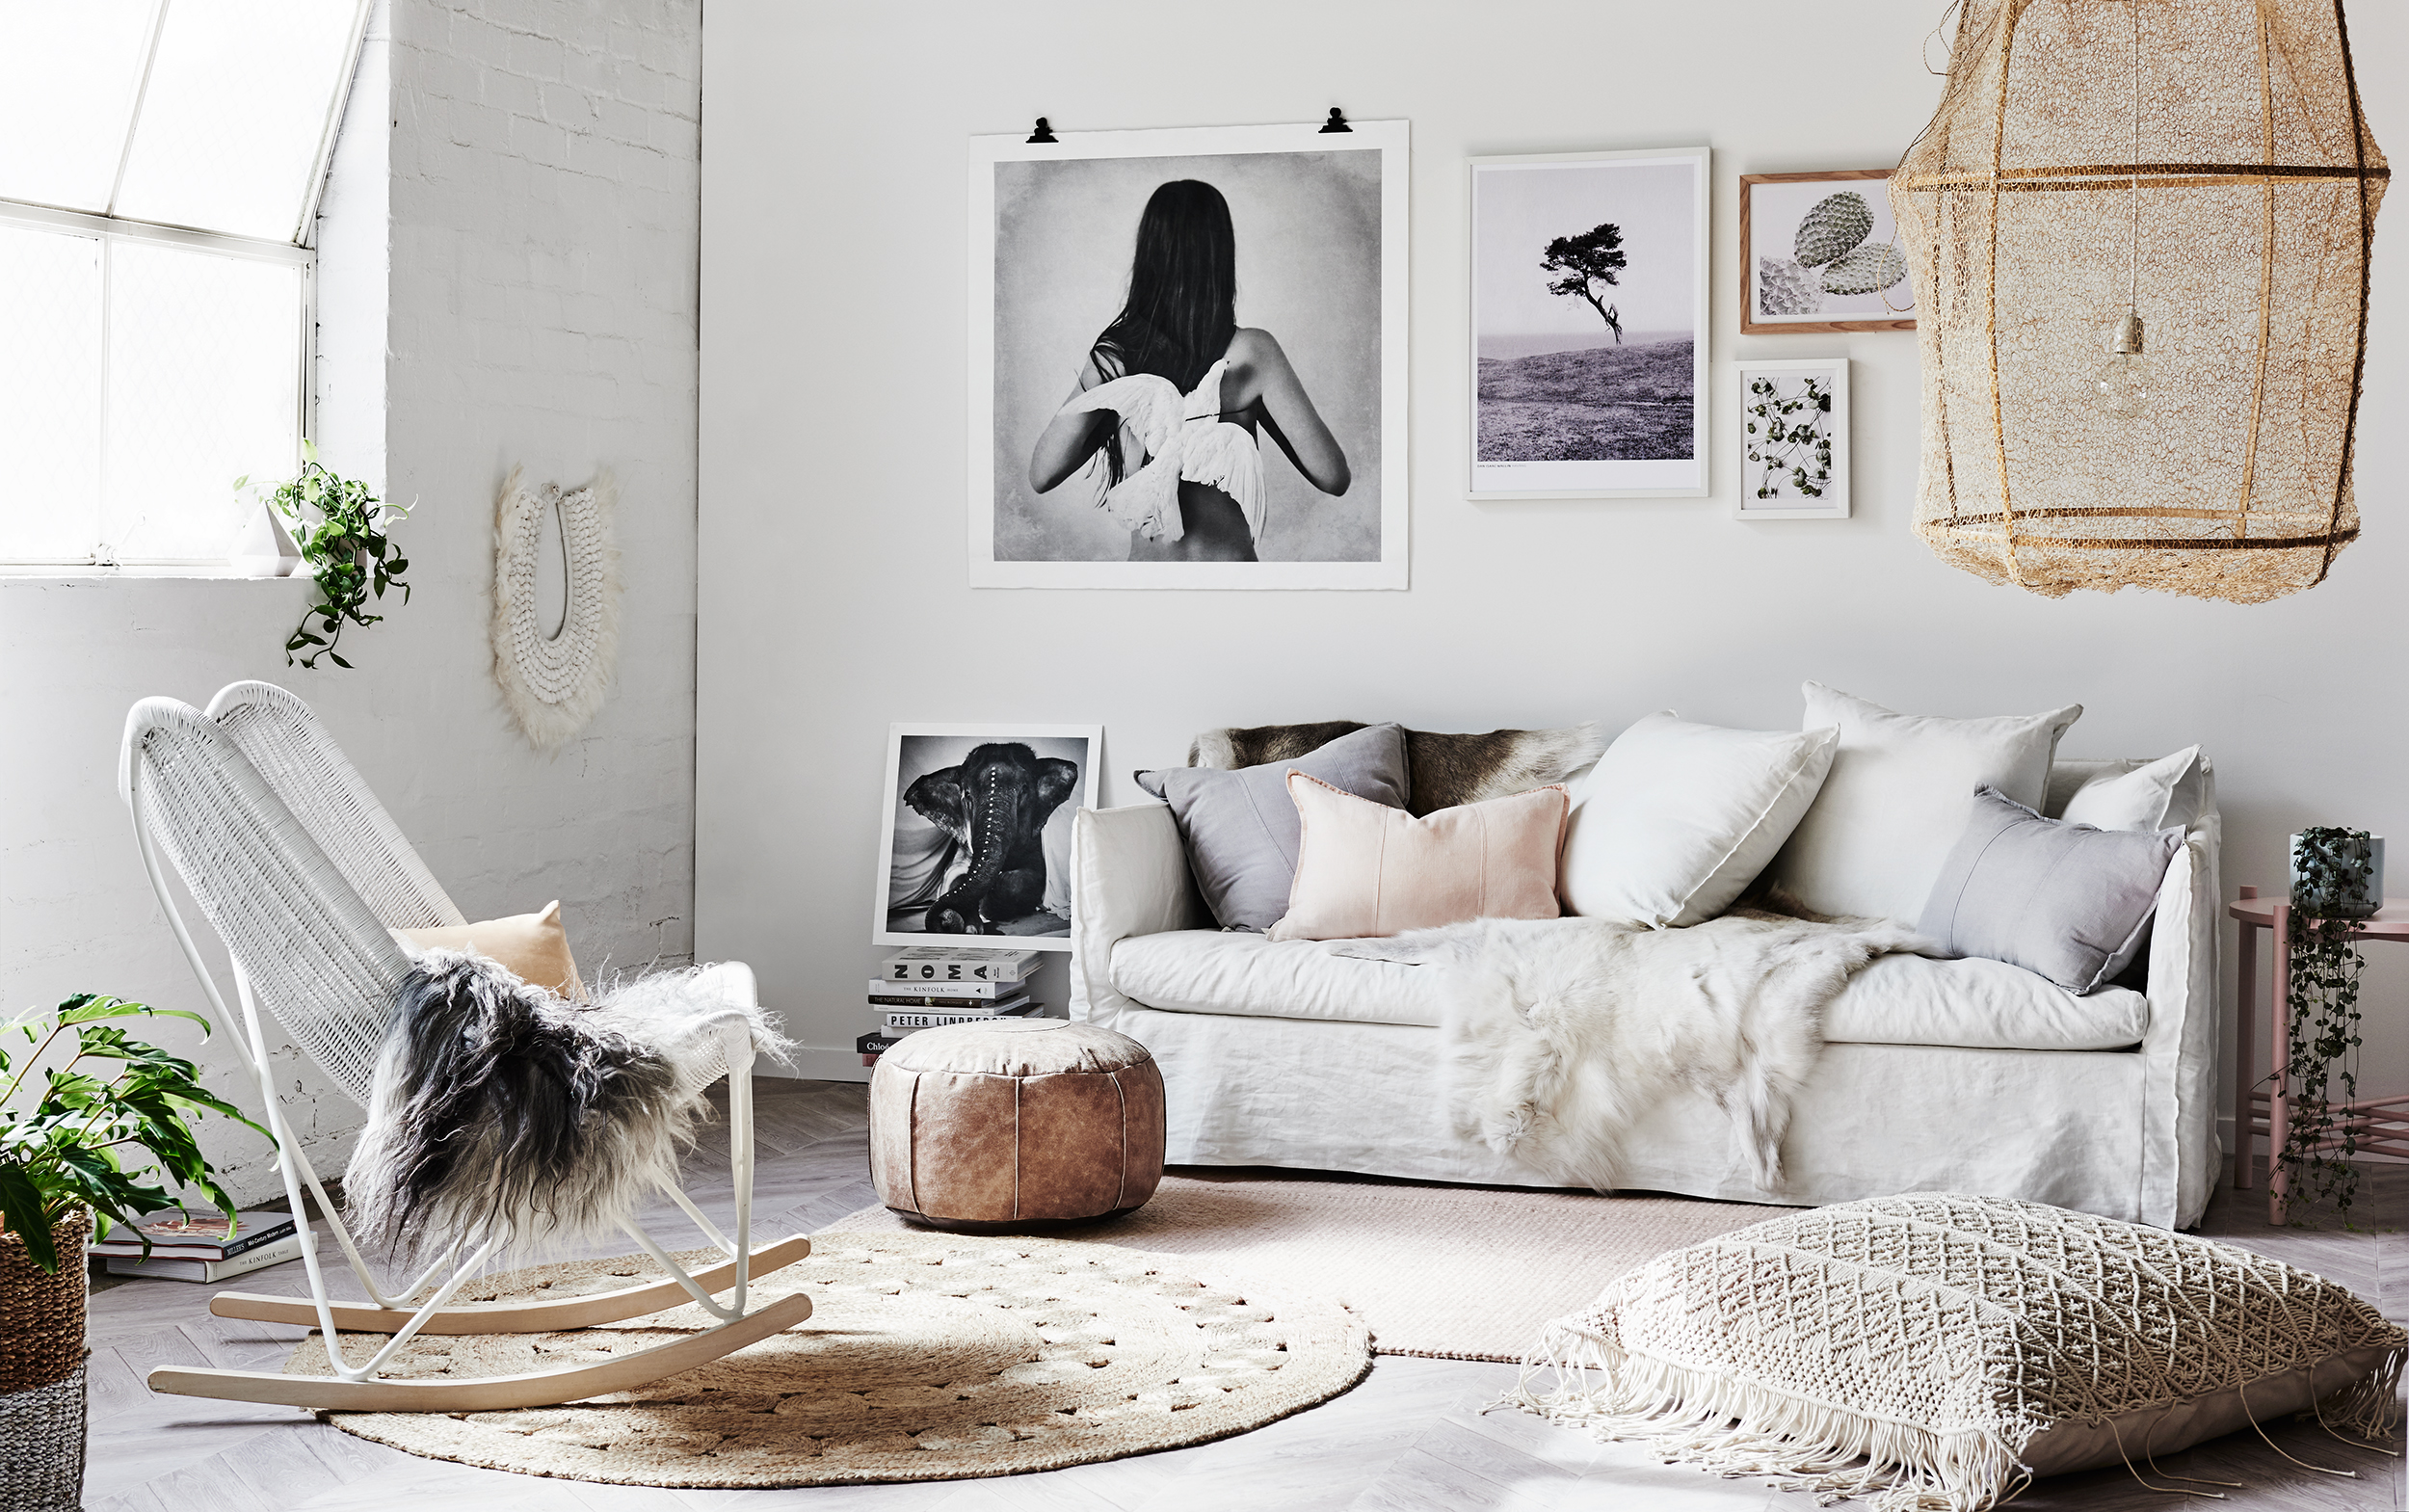 Quick and cheap living room ideas: 10 updates you can do in a ...